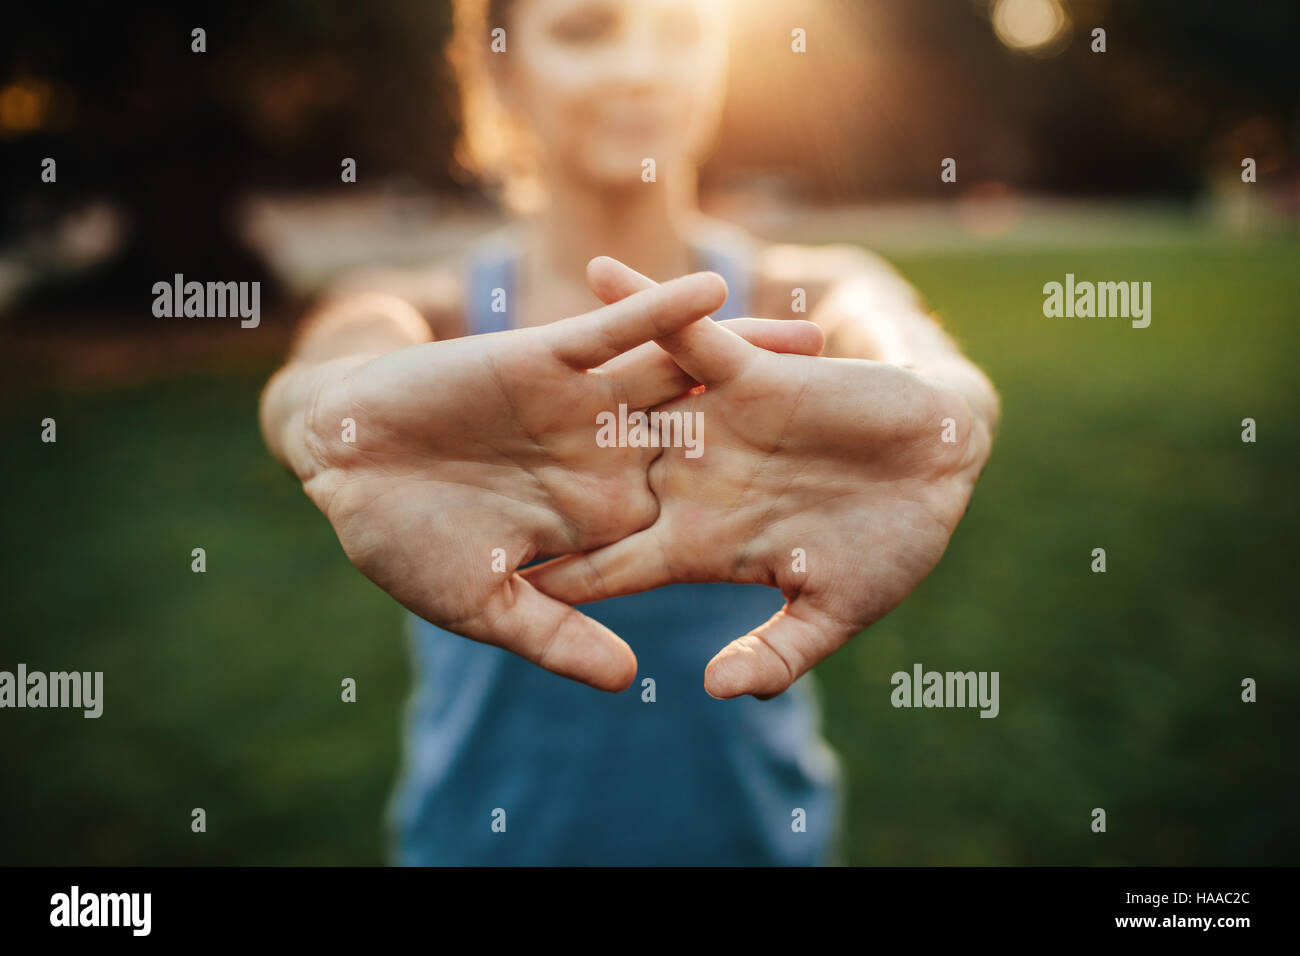 Young woman stretching arms outdoors. Fitness female doing warmup exercise at the park, focus on hands. - Stock Image